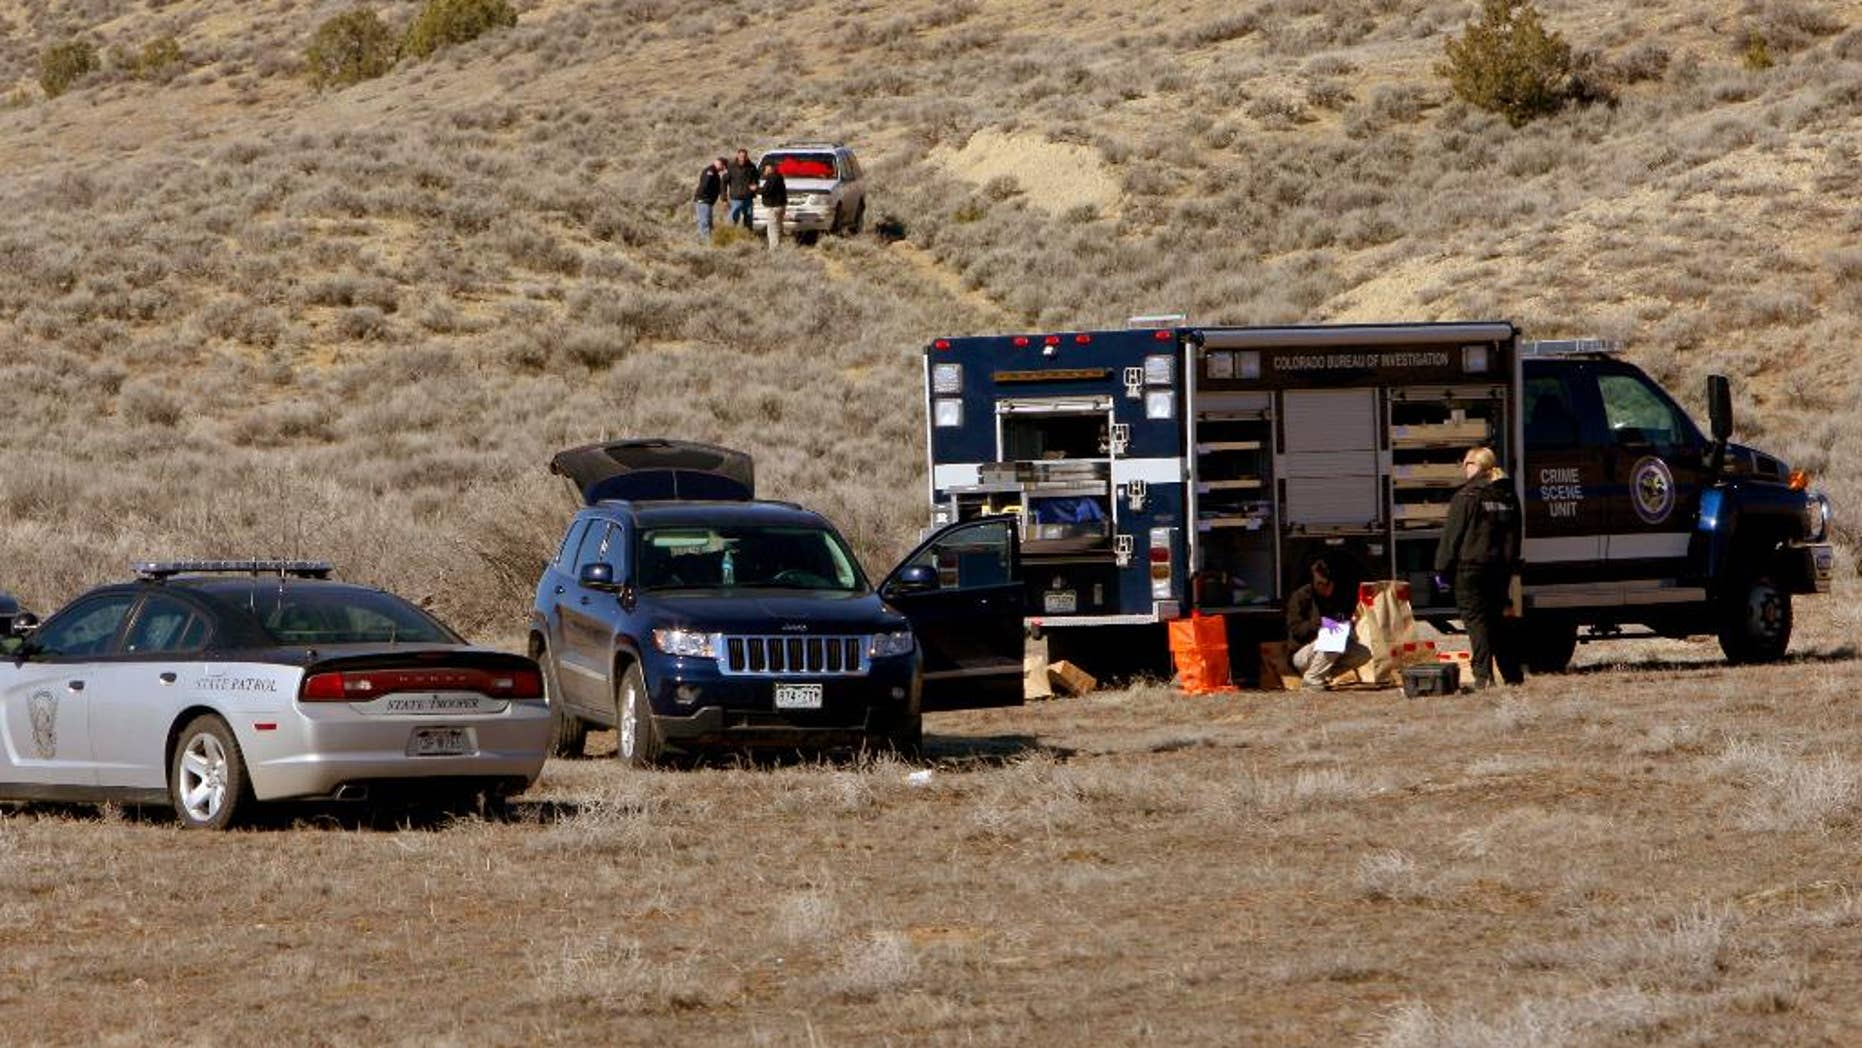 In this March 10, 2015 photo, members of the Judicial District's critical incident team investigate an officer-involved shooting east of Dinosaur, Colo. A Colorado sheriff's deputy and a state wildlife officer were held hostage by a man and a woman before a struggle erupted and the man was fatally shot, authorities said. Neither the deputy nor the wildlife officer was injured in the confrontation Monday. (AP Photo/The Deseret News, Geoff Liesik)